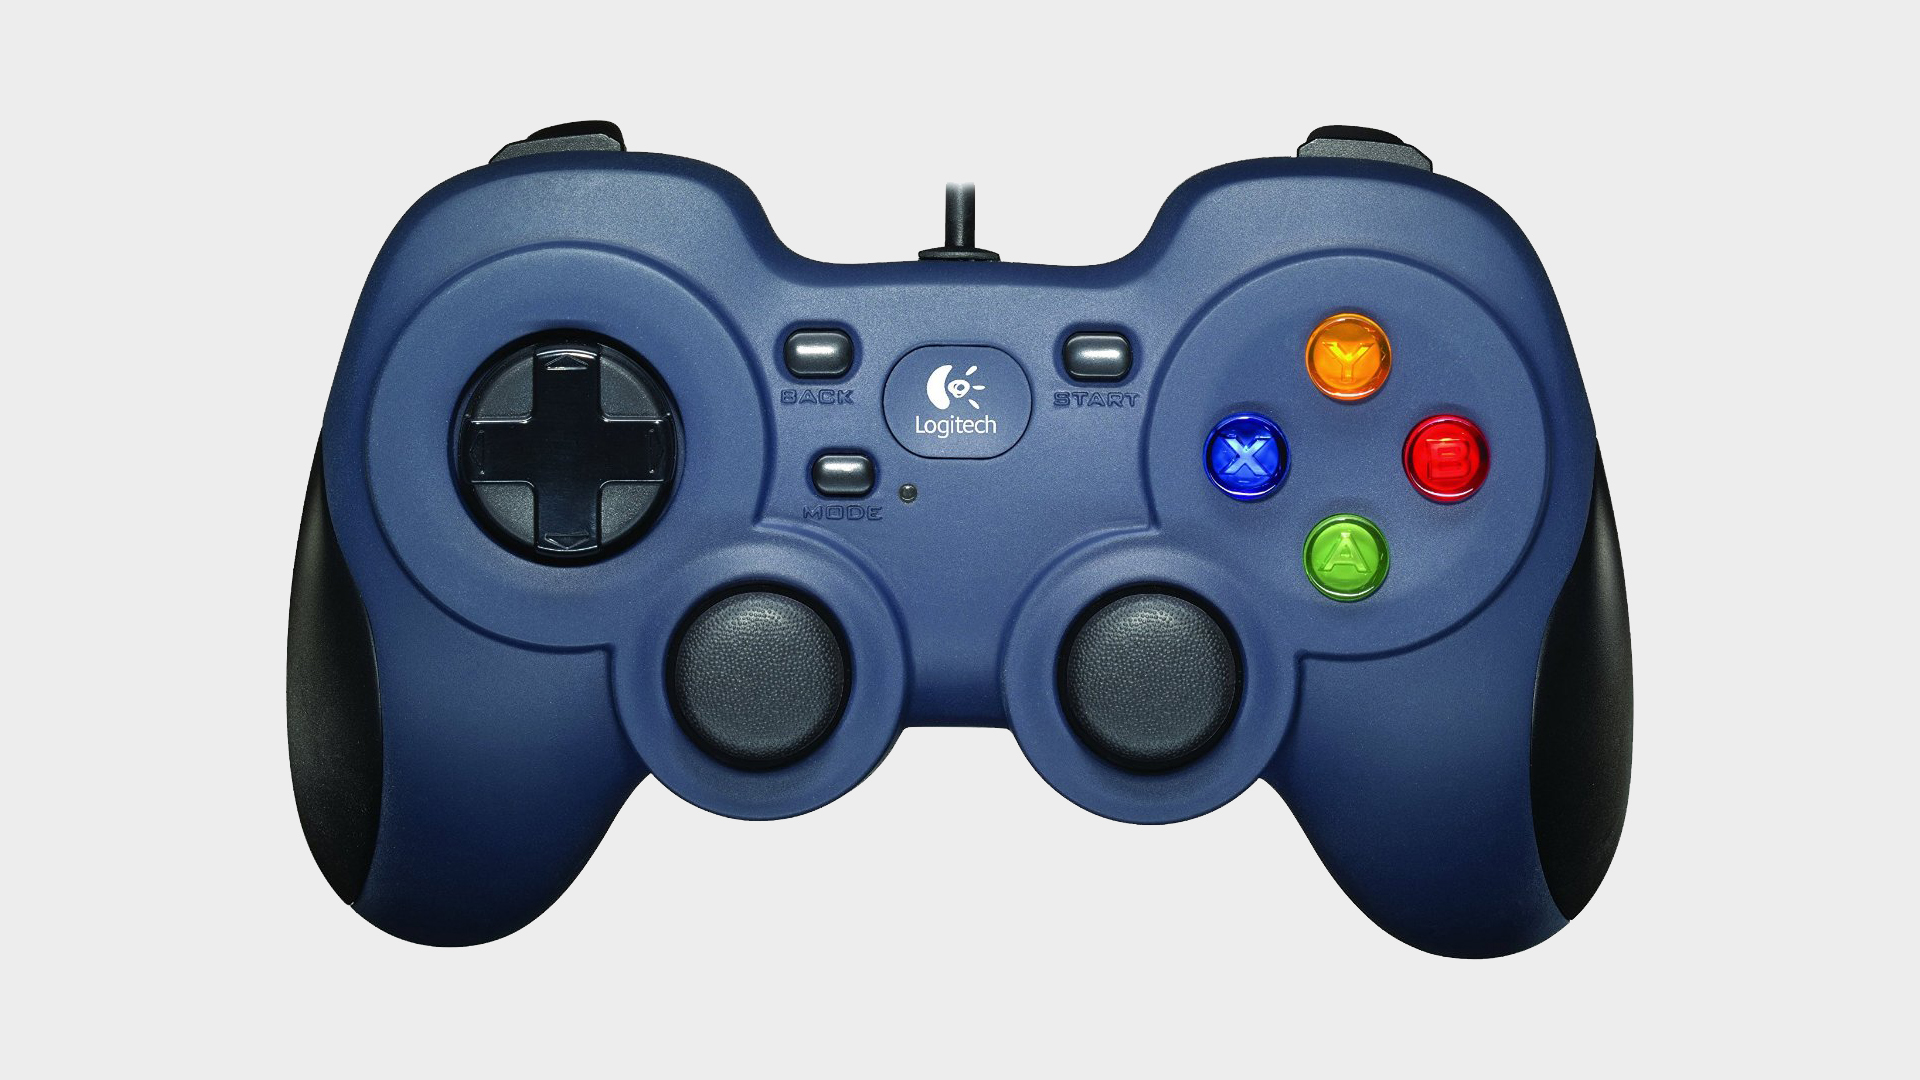 Manette PC Gamer : Comparatif Meilleure Manette PC Gaming 2021